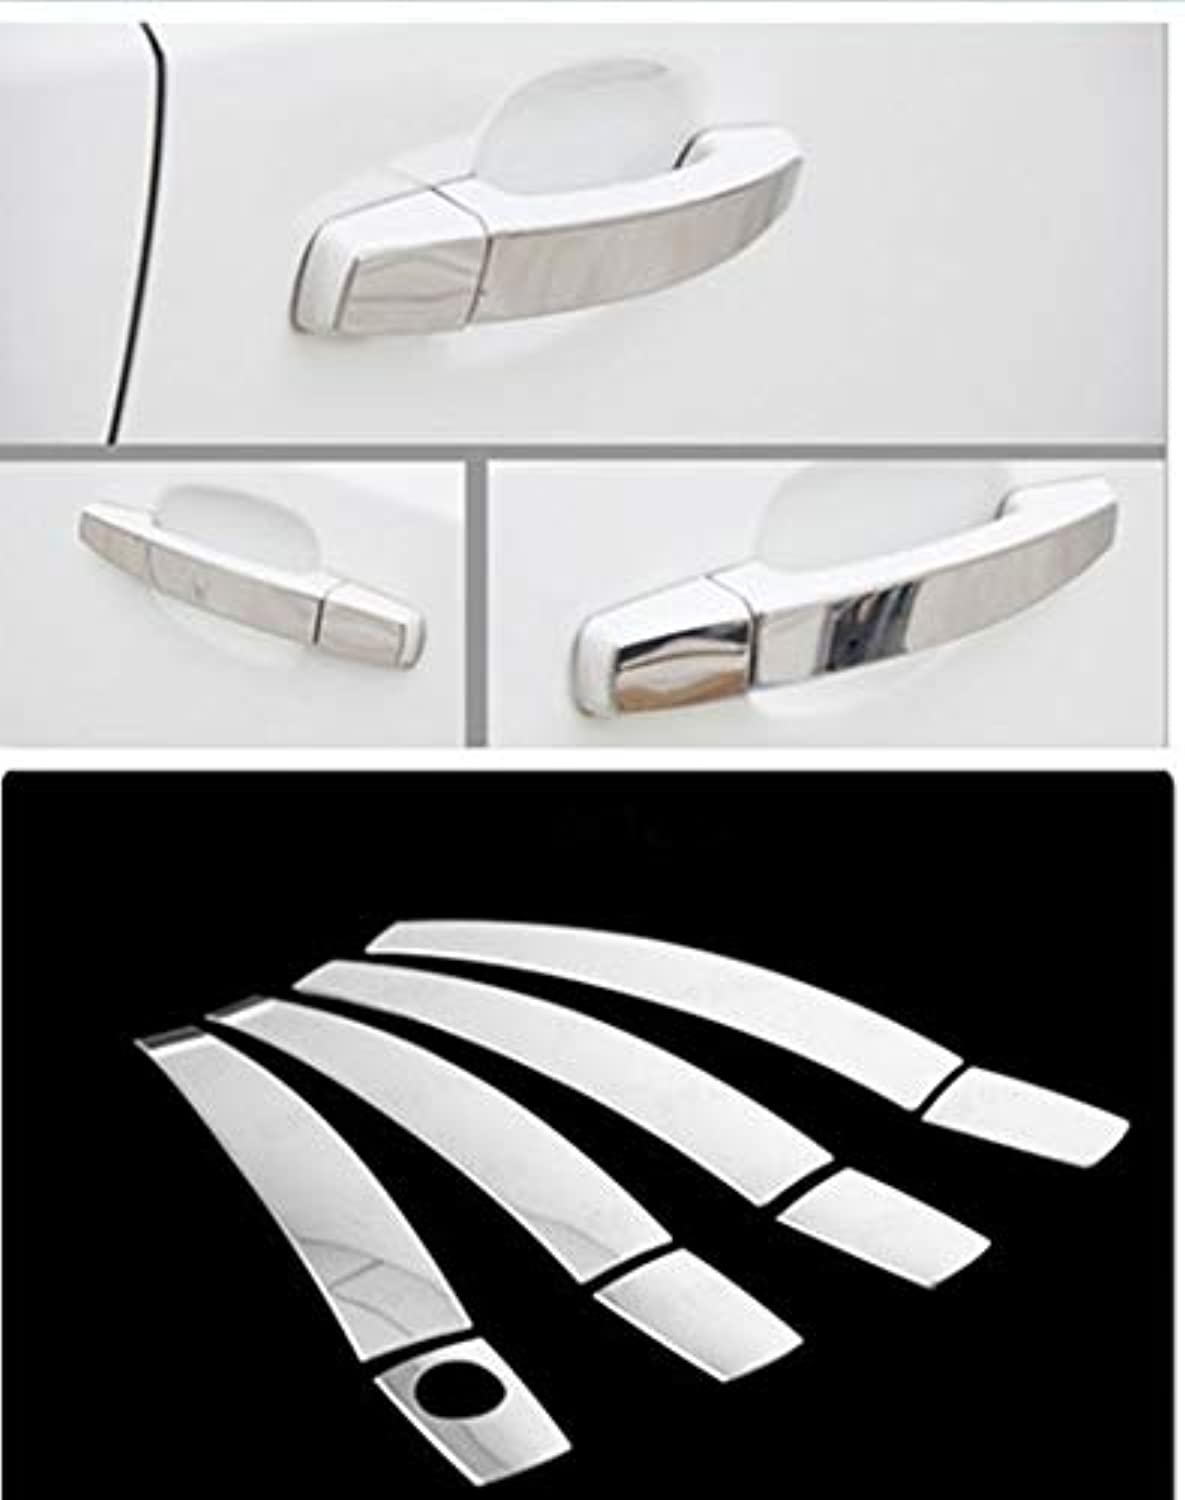 For Opel Zafira B 2005 2006 2007 2008 2009 Stainless Steel Car Door Handle Cover Trim Sticker Car Styling